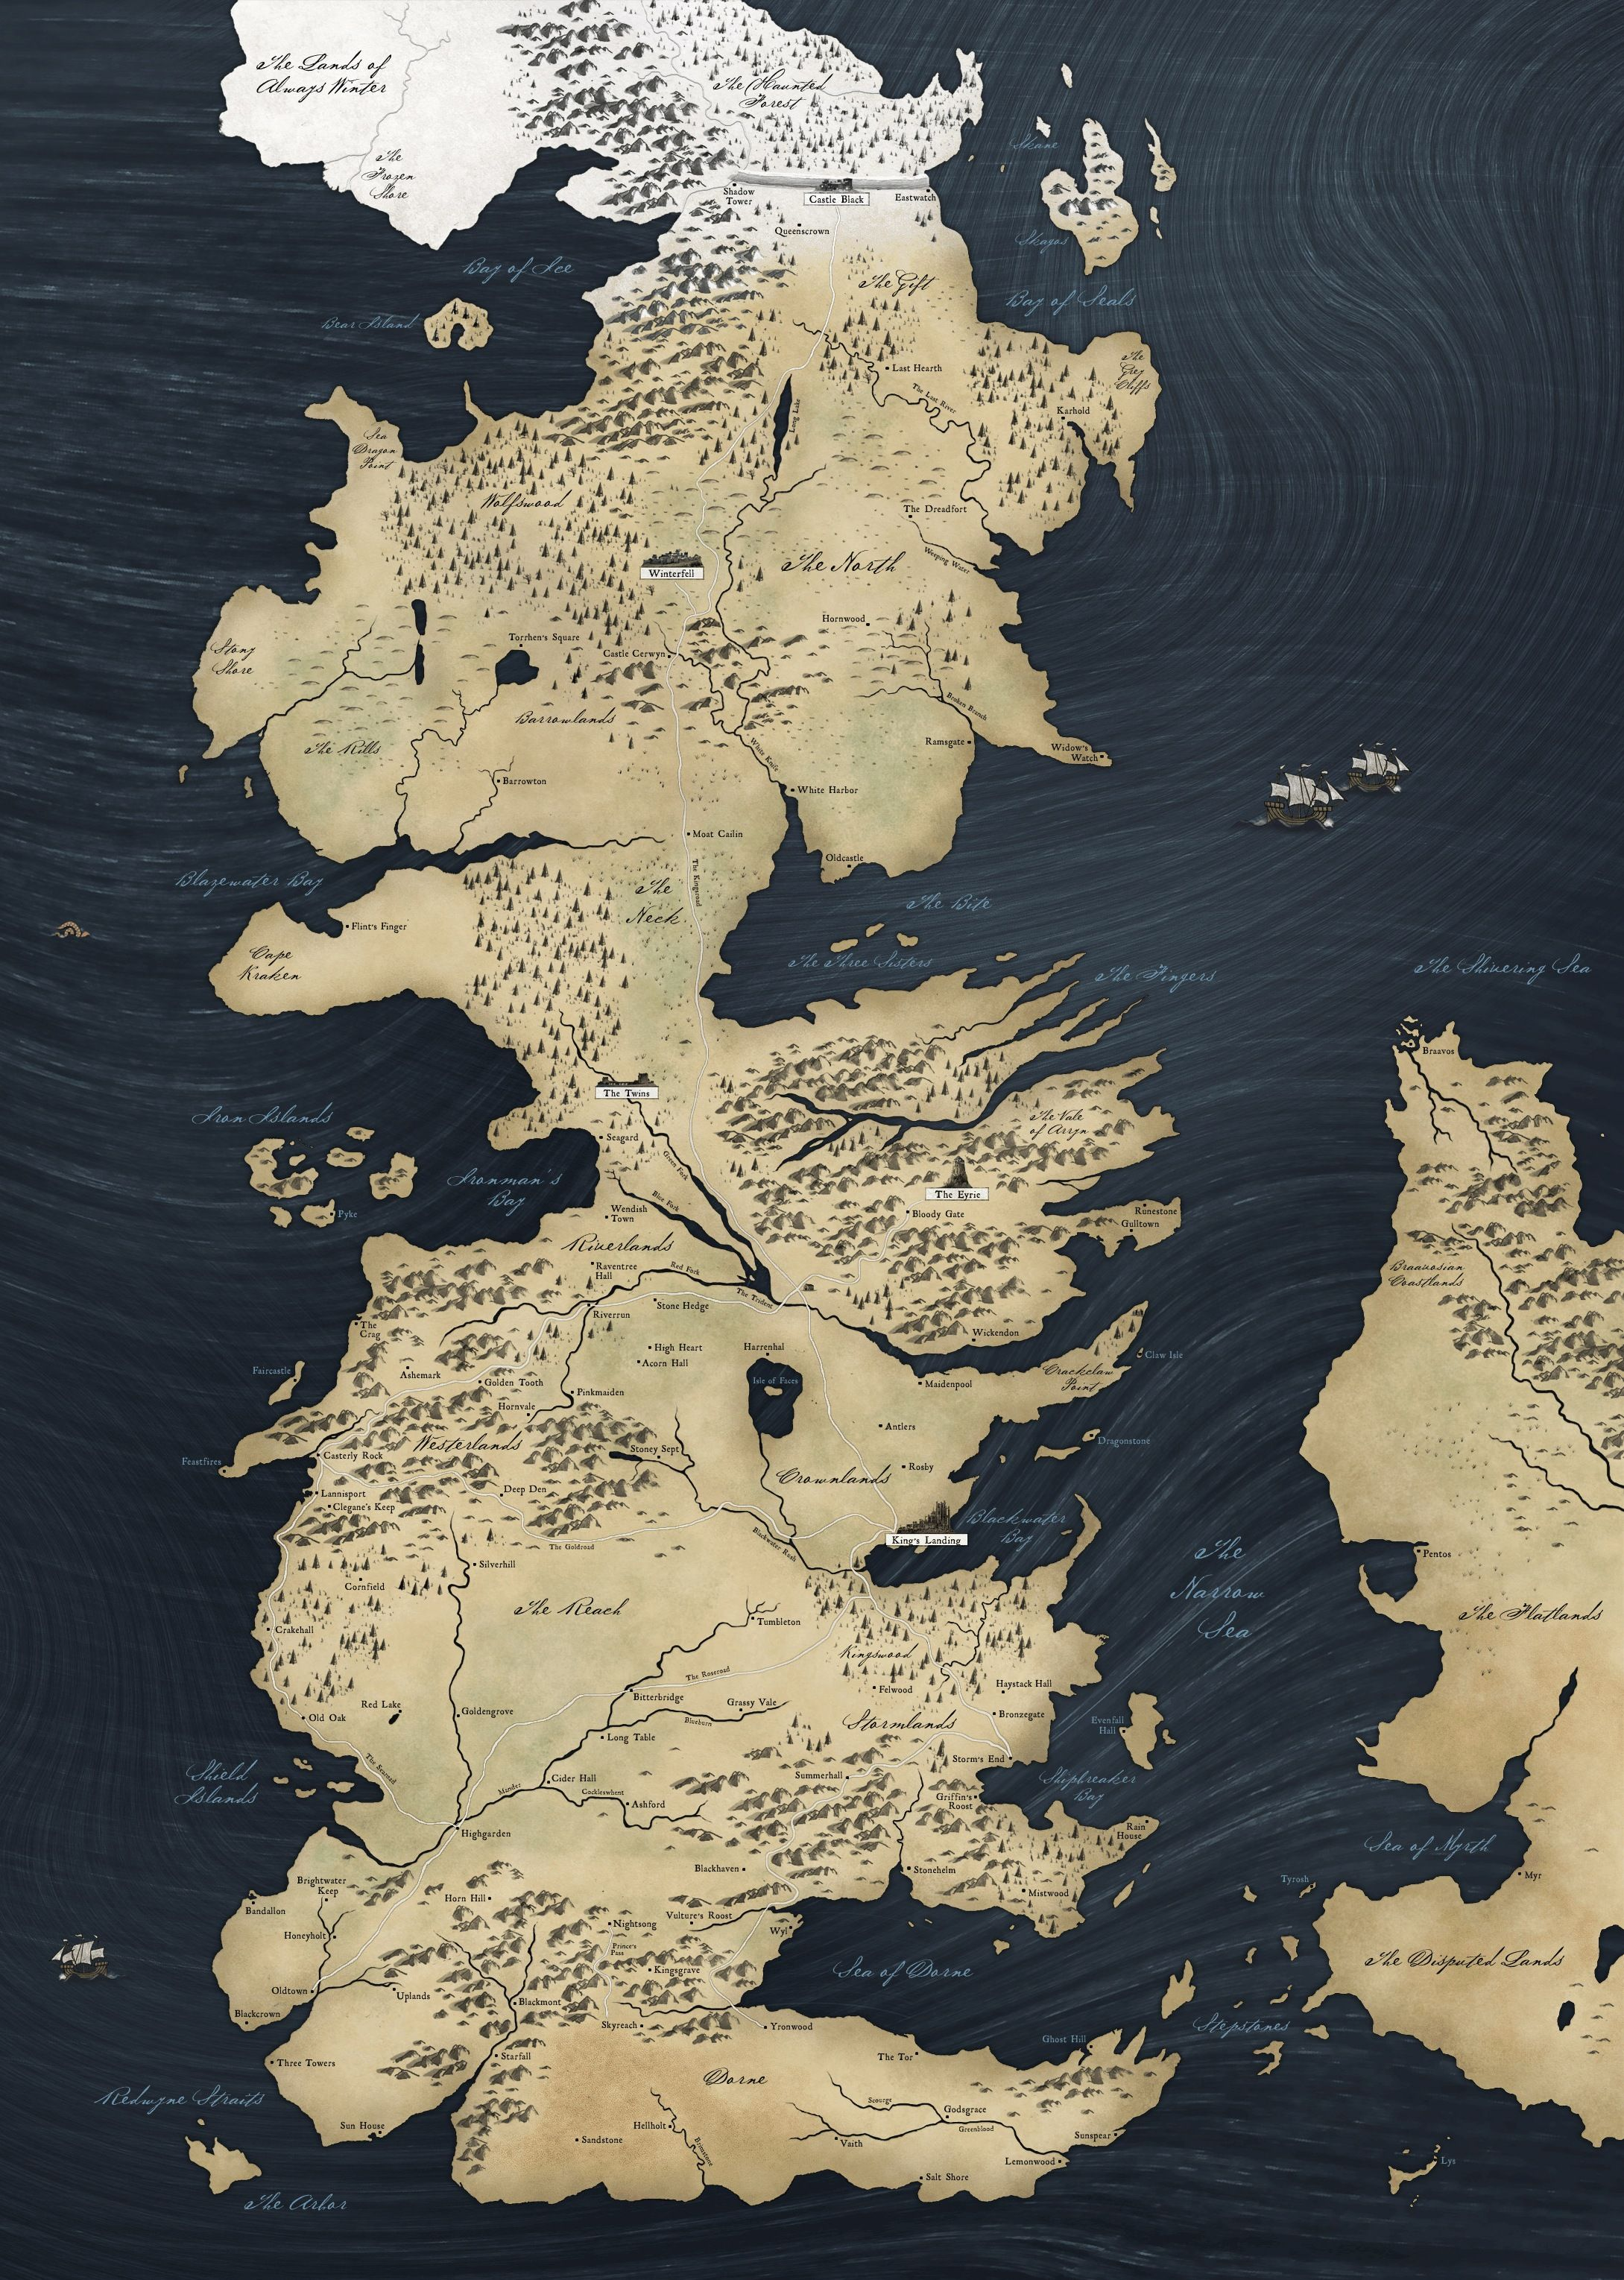 Epic map of the continents of westeros and essos from a song of ice ...